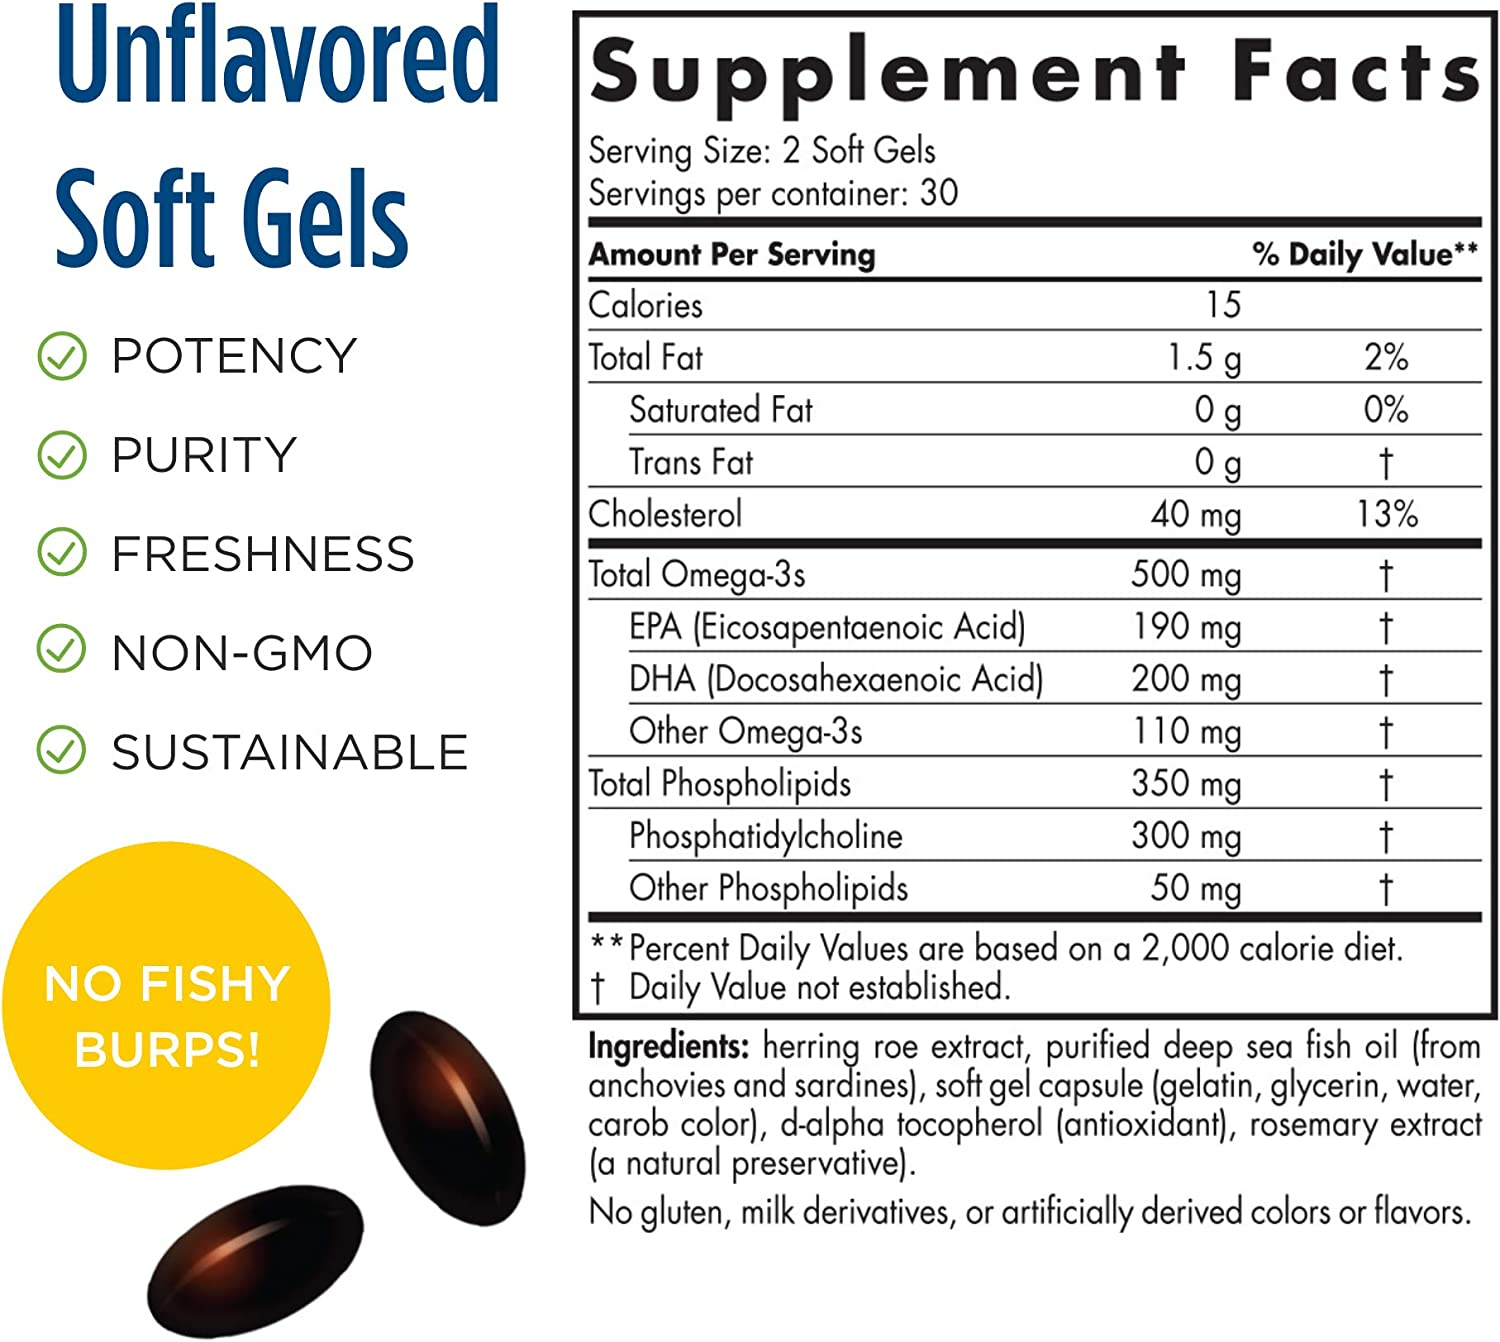 Nordic Naturals Omega-3 Phospholipids, Unflavored - 500 mg Omega-3 & 350 mg Phospholipids - 60 Soft Gels - Heart & Brain Health - Small, Easy-to-Swallow Soft Gels - Non-GMO - 30 Servings